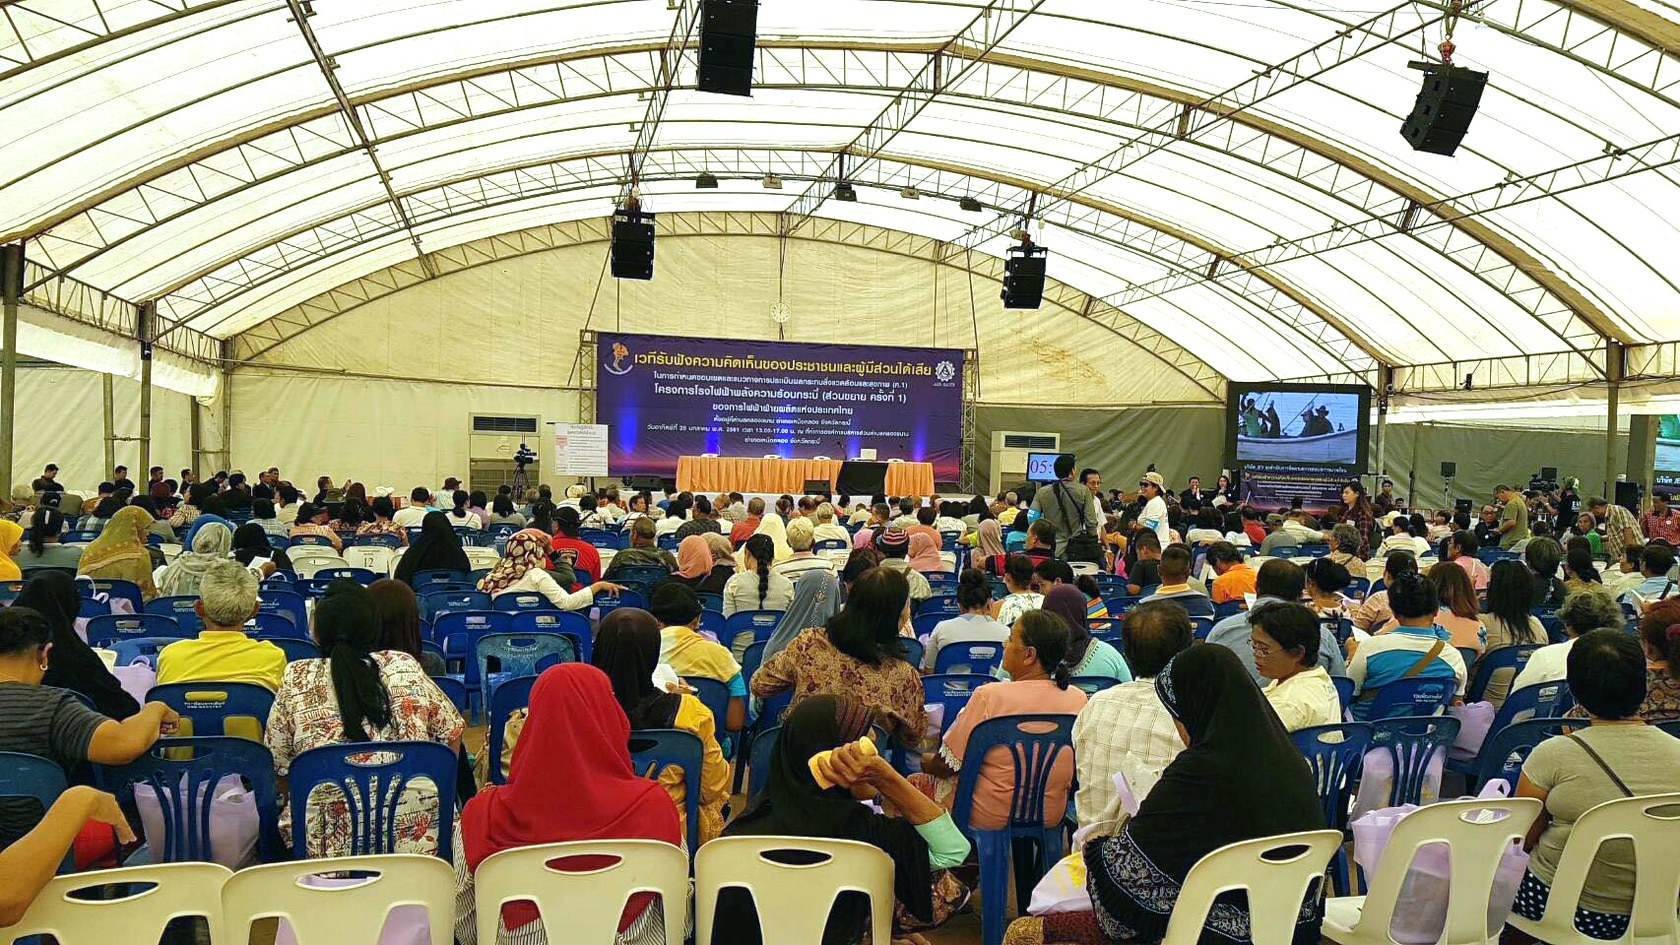 Krabi power plant public hearing went smoothly. Protesters boycot event. | The Thaiger